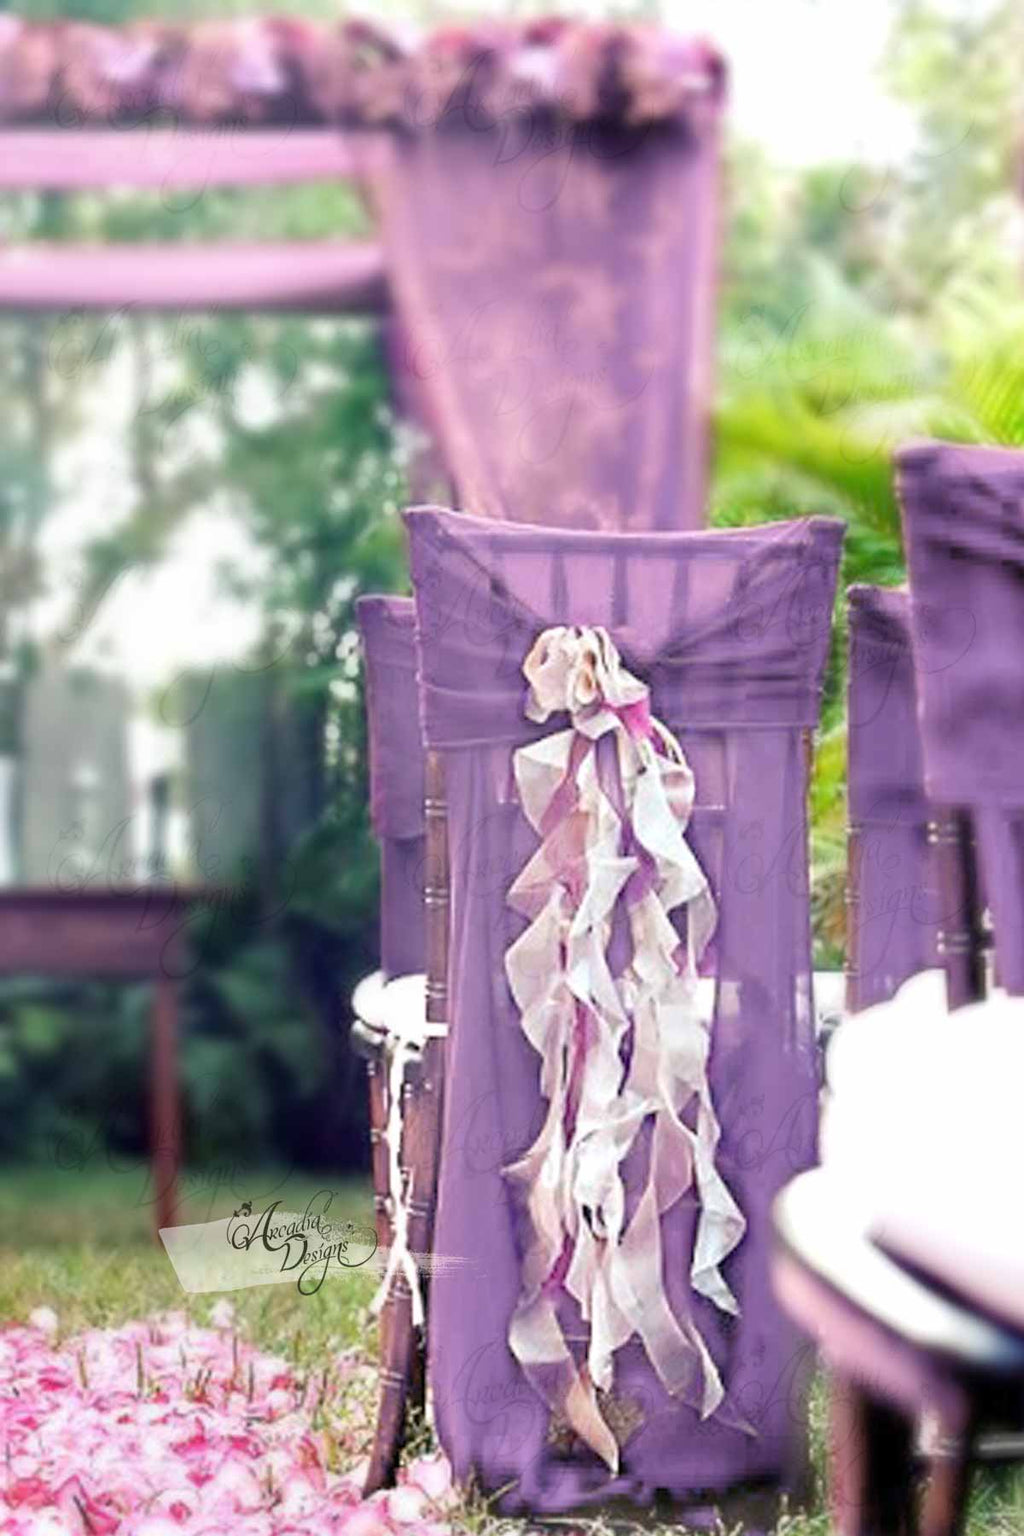 Arcadia Designs Blush Lavender Ruffled Chiffon Chair Cover with Curly Sash